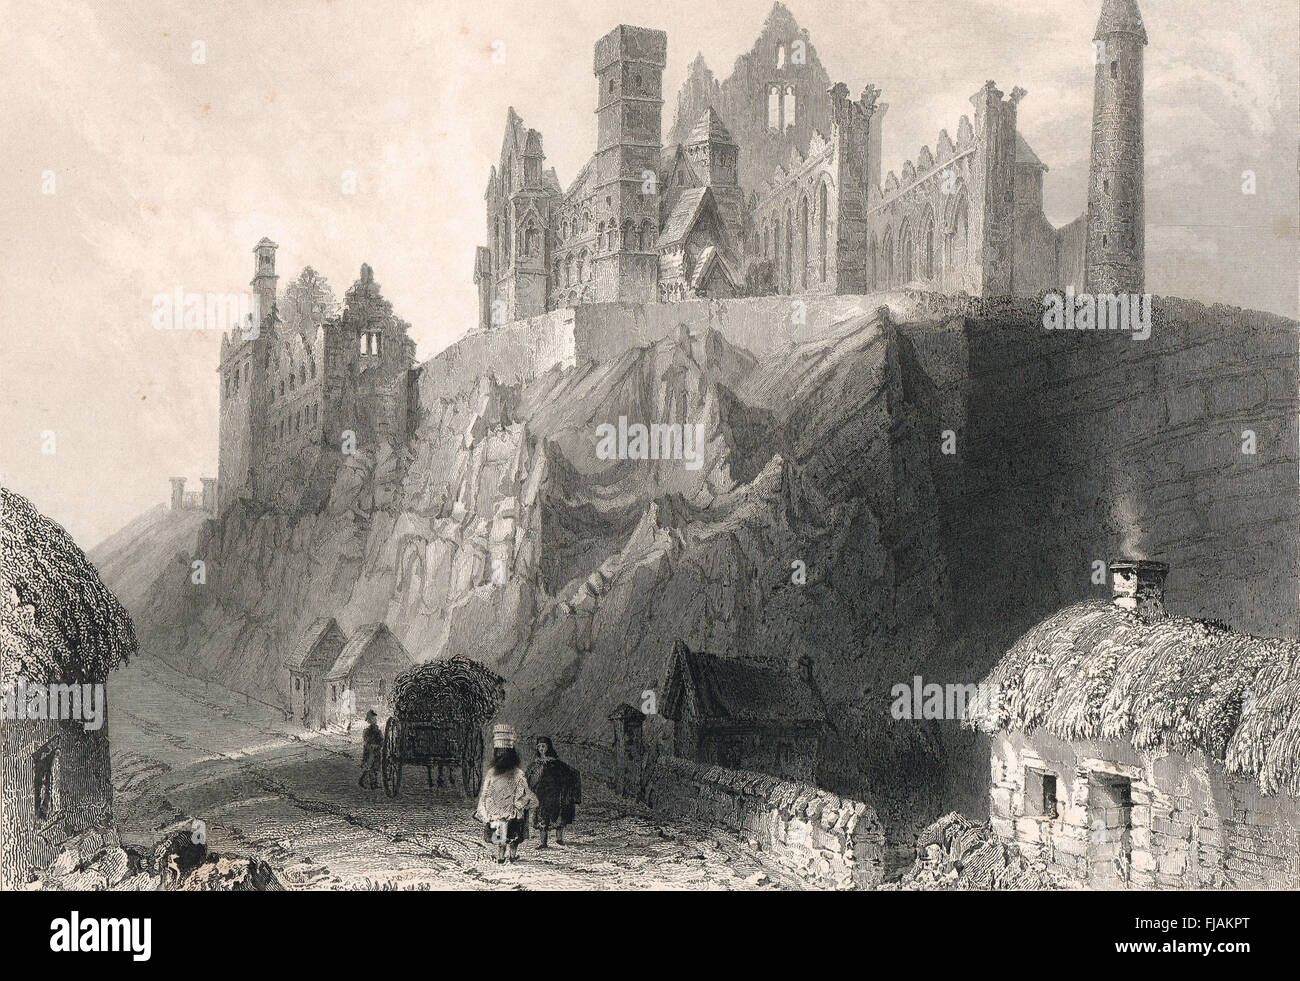 Rock of Cashel, Cashel of the Kings, County Tipperary , Ireland Engraving 1841 - Stock Image